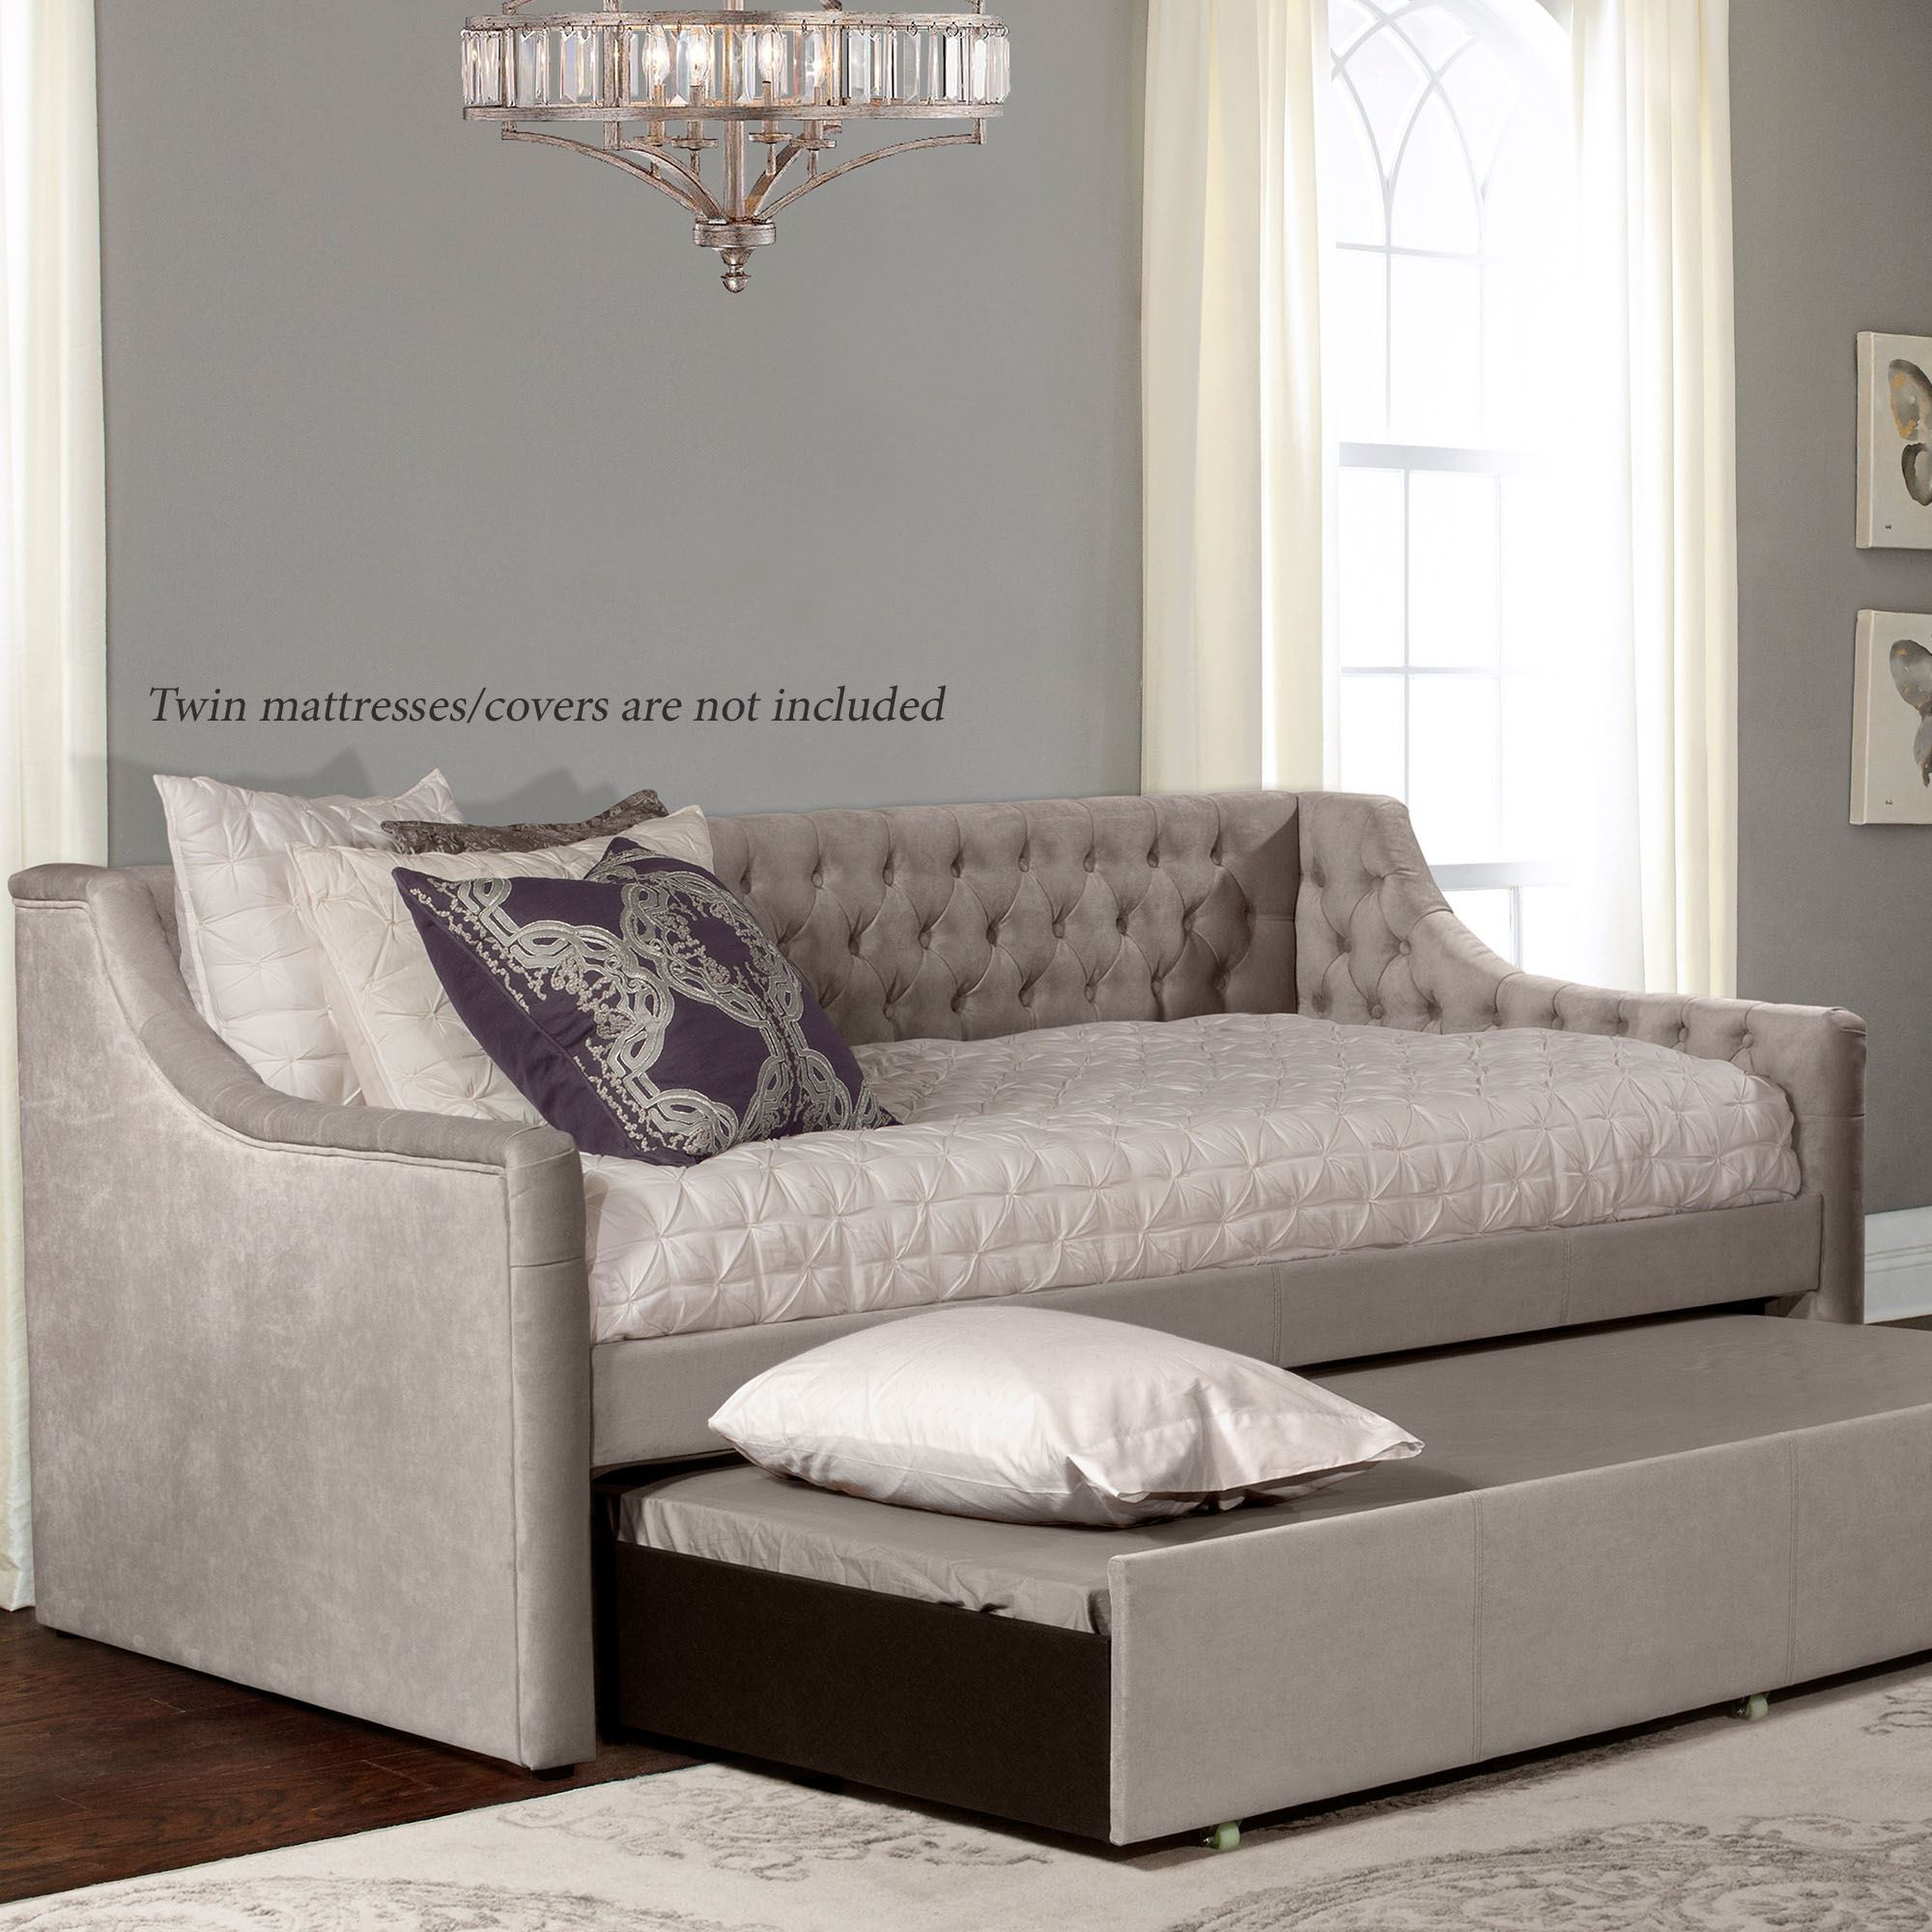 - Waterbury Gray Tufted Upholstered Daybed Frame With Trundle